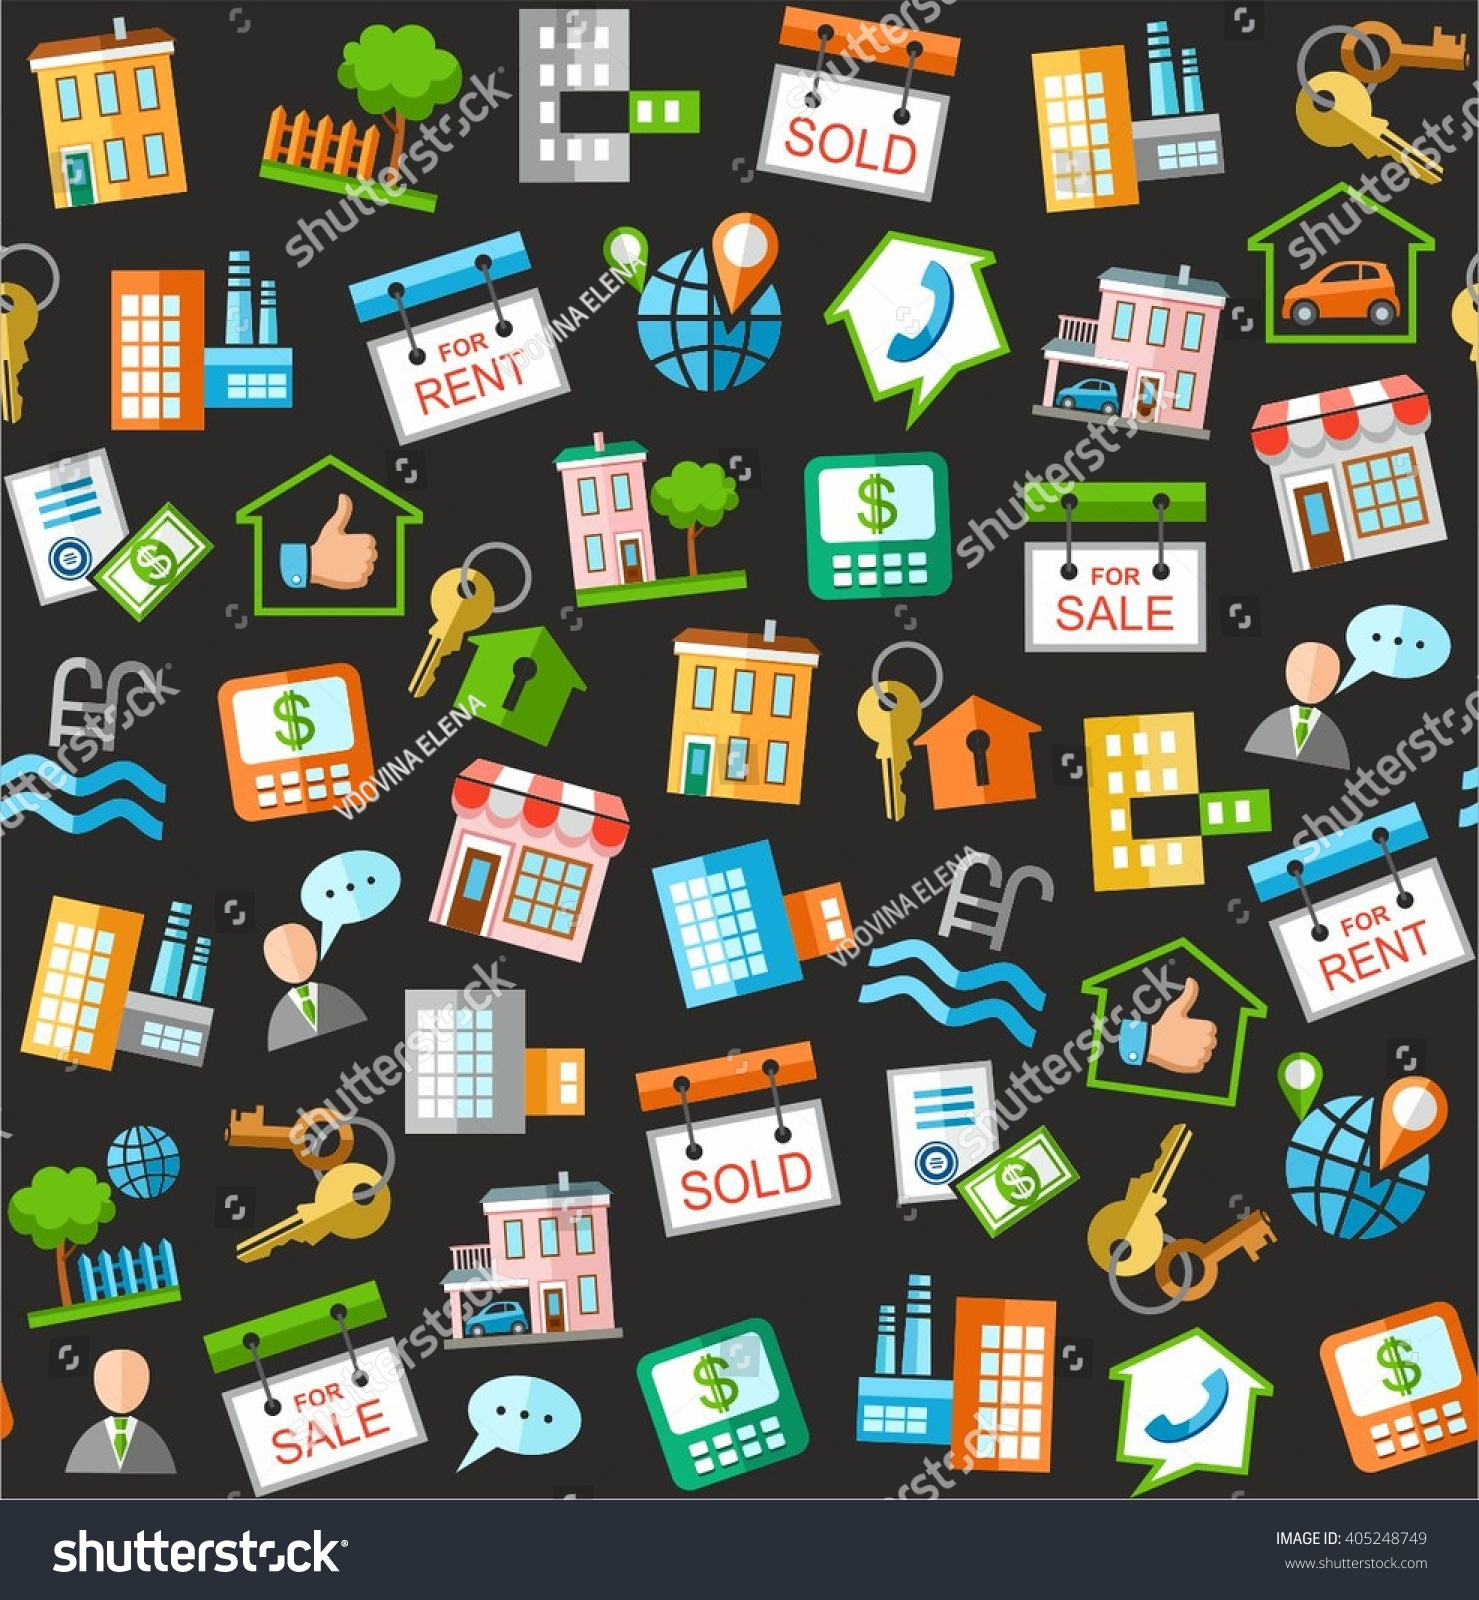 Property Real Estate Services Black Background Stock Vector Royalty Free 405248749